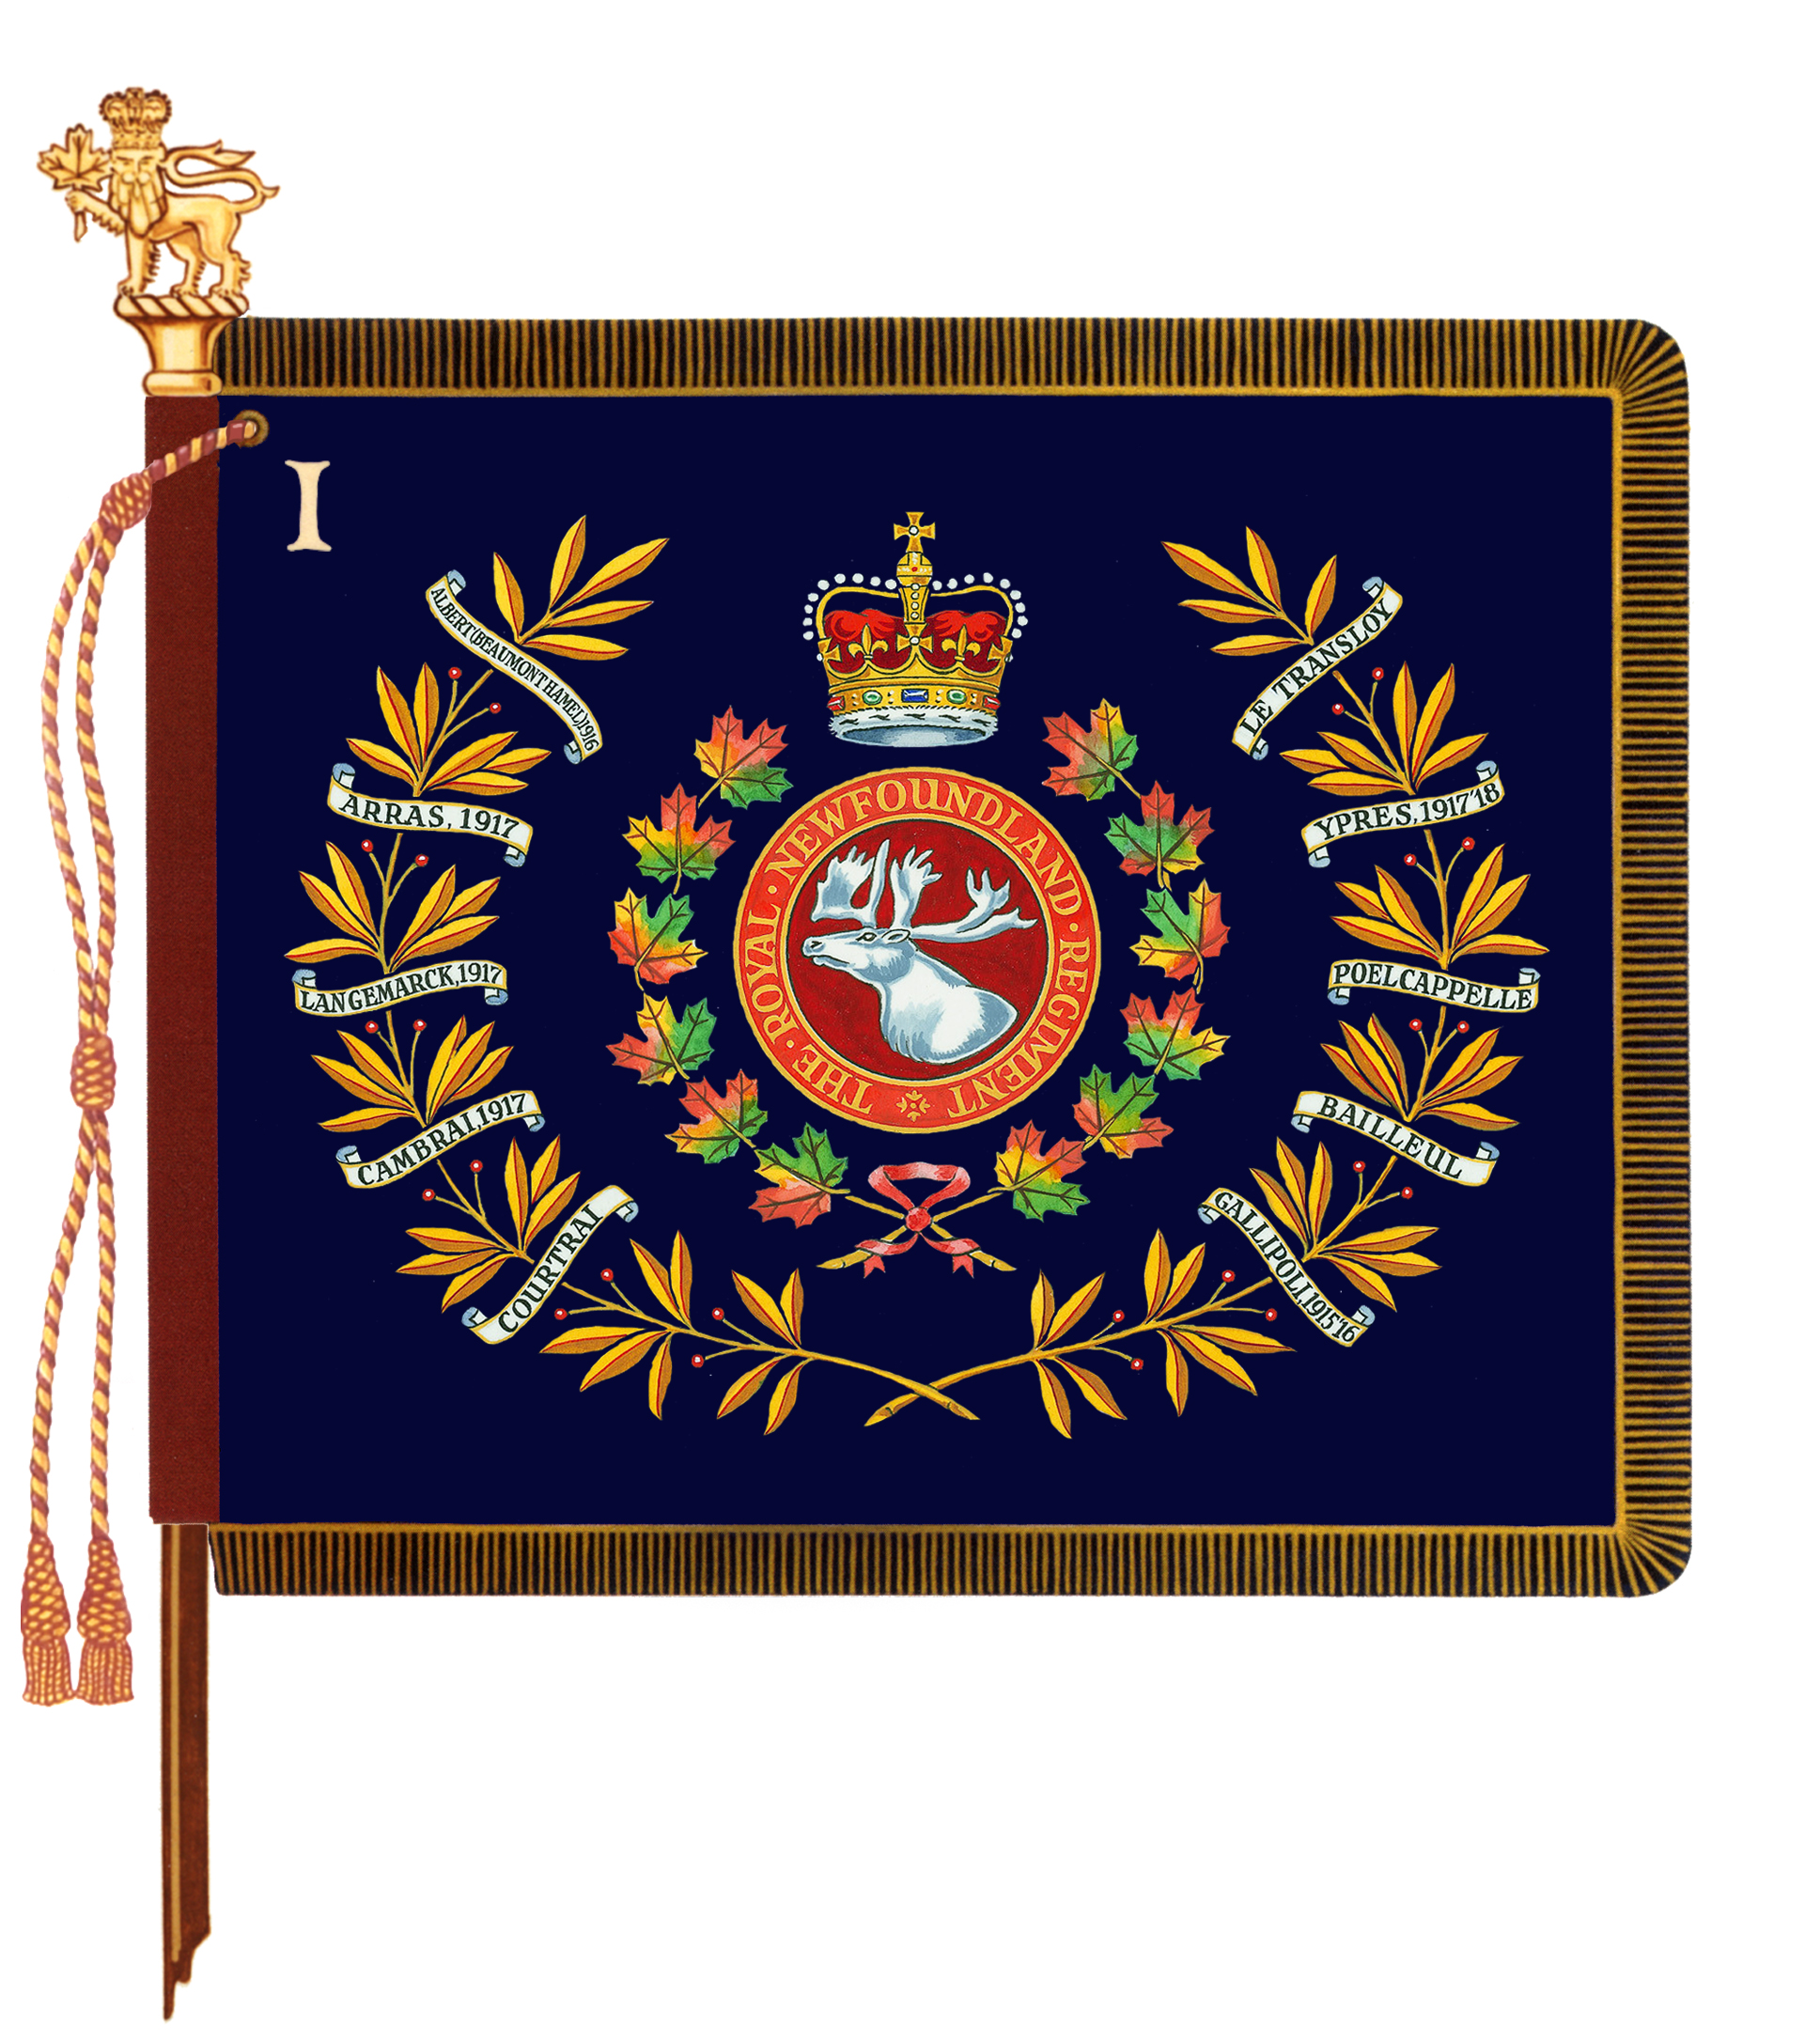 The Royal Newfoundland Regiment